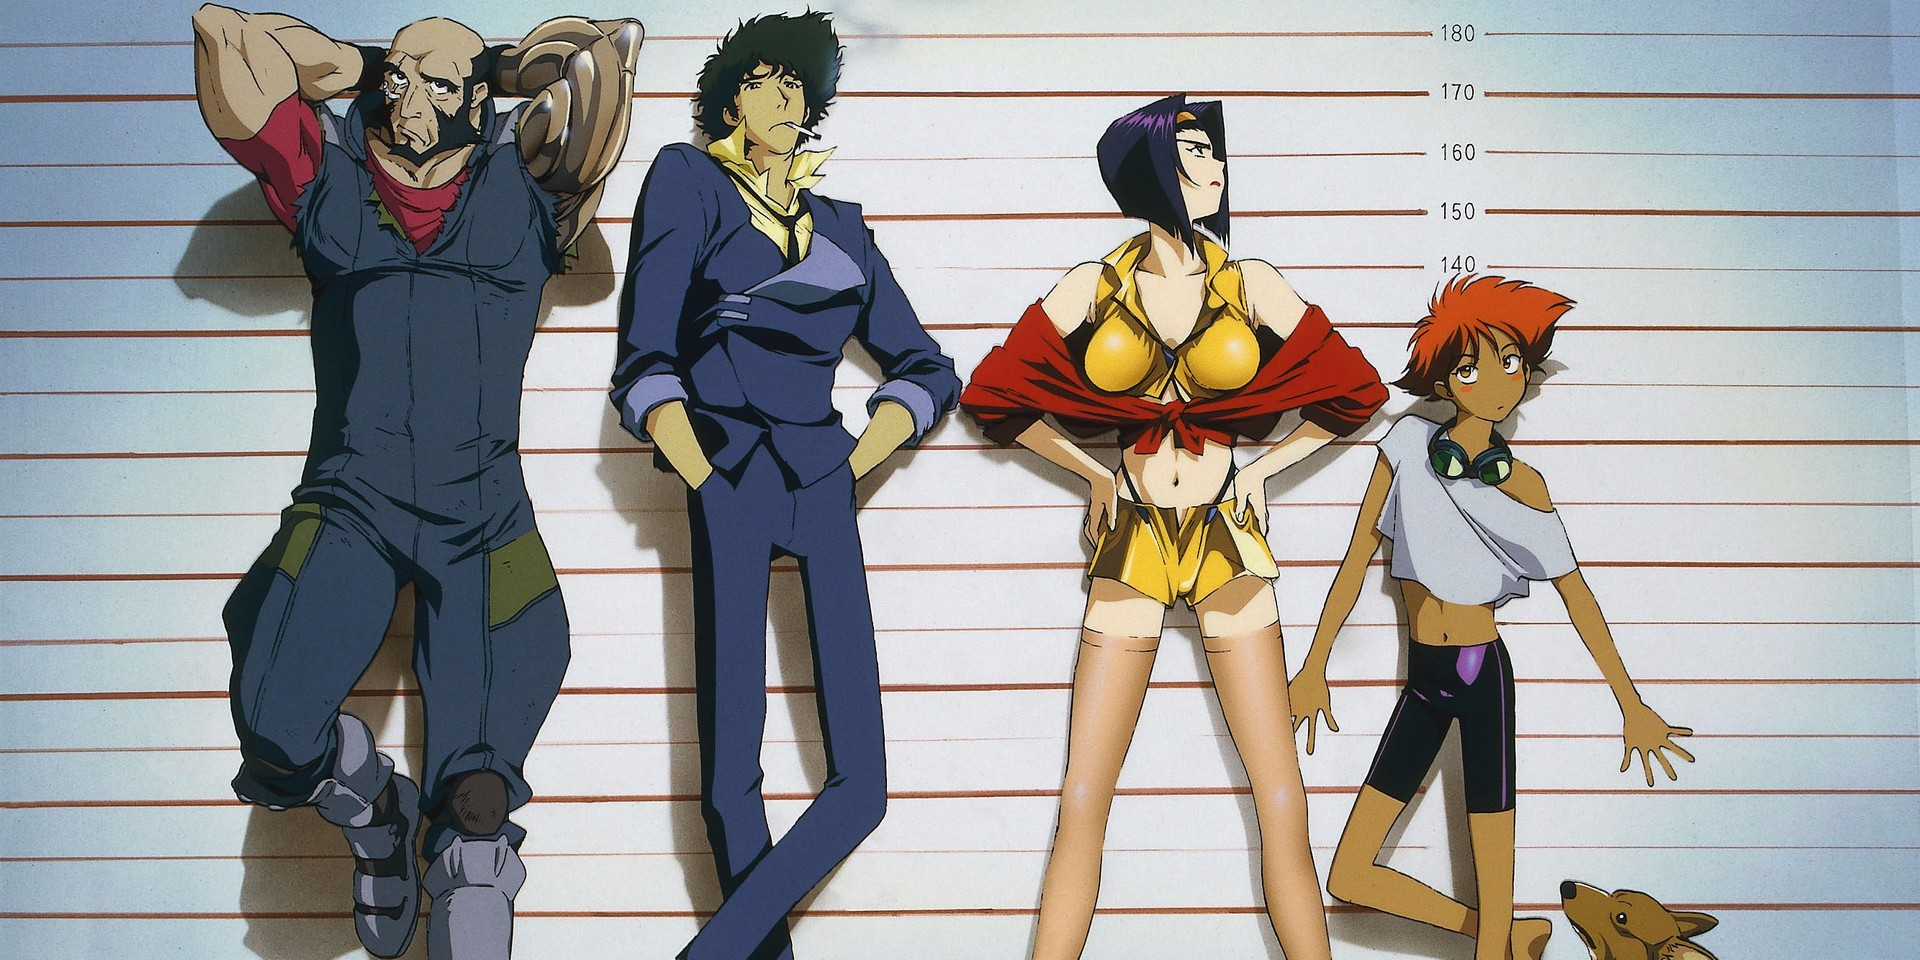 15 great anime theme songs, from Samurai Champloo to Sailor Moon